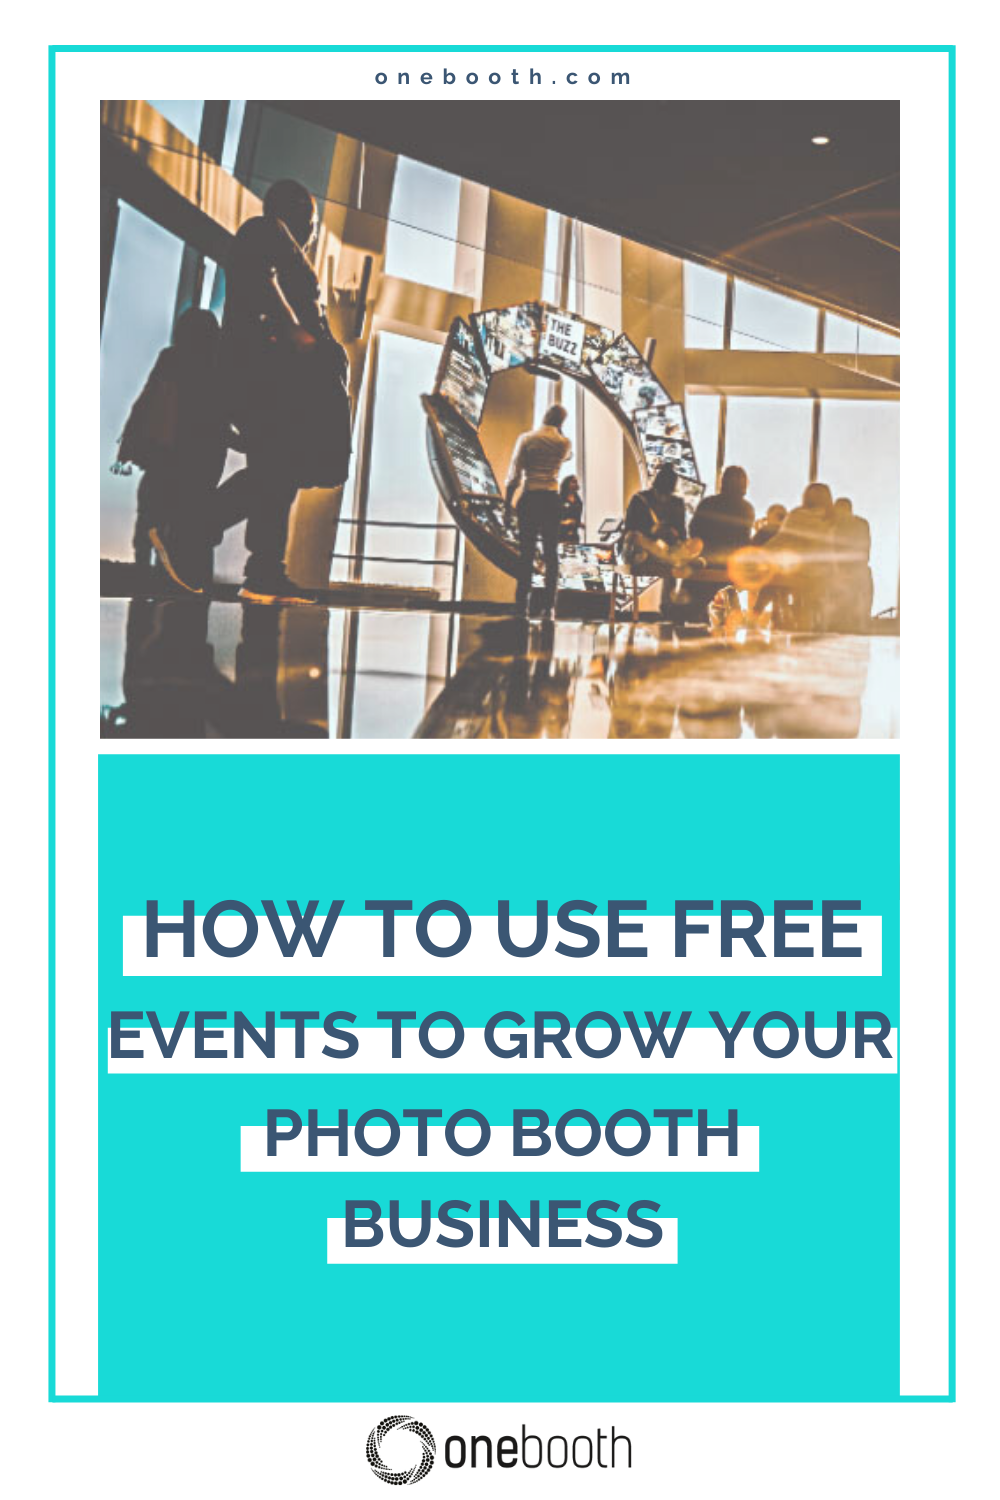 All You Need to Know About Using Free Events to Grow Your Photo Booth Business